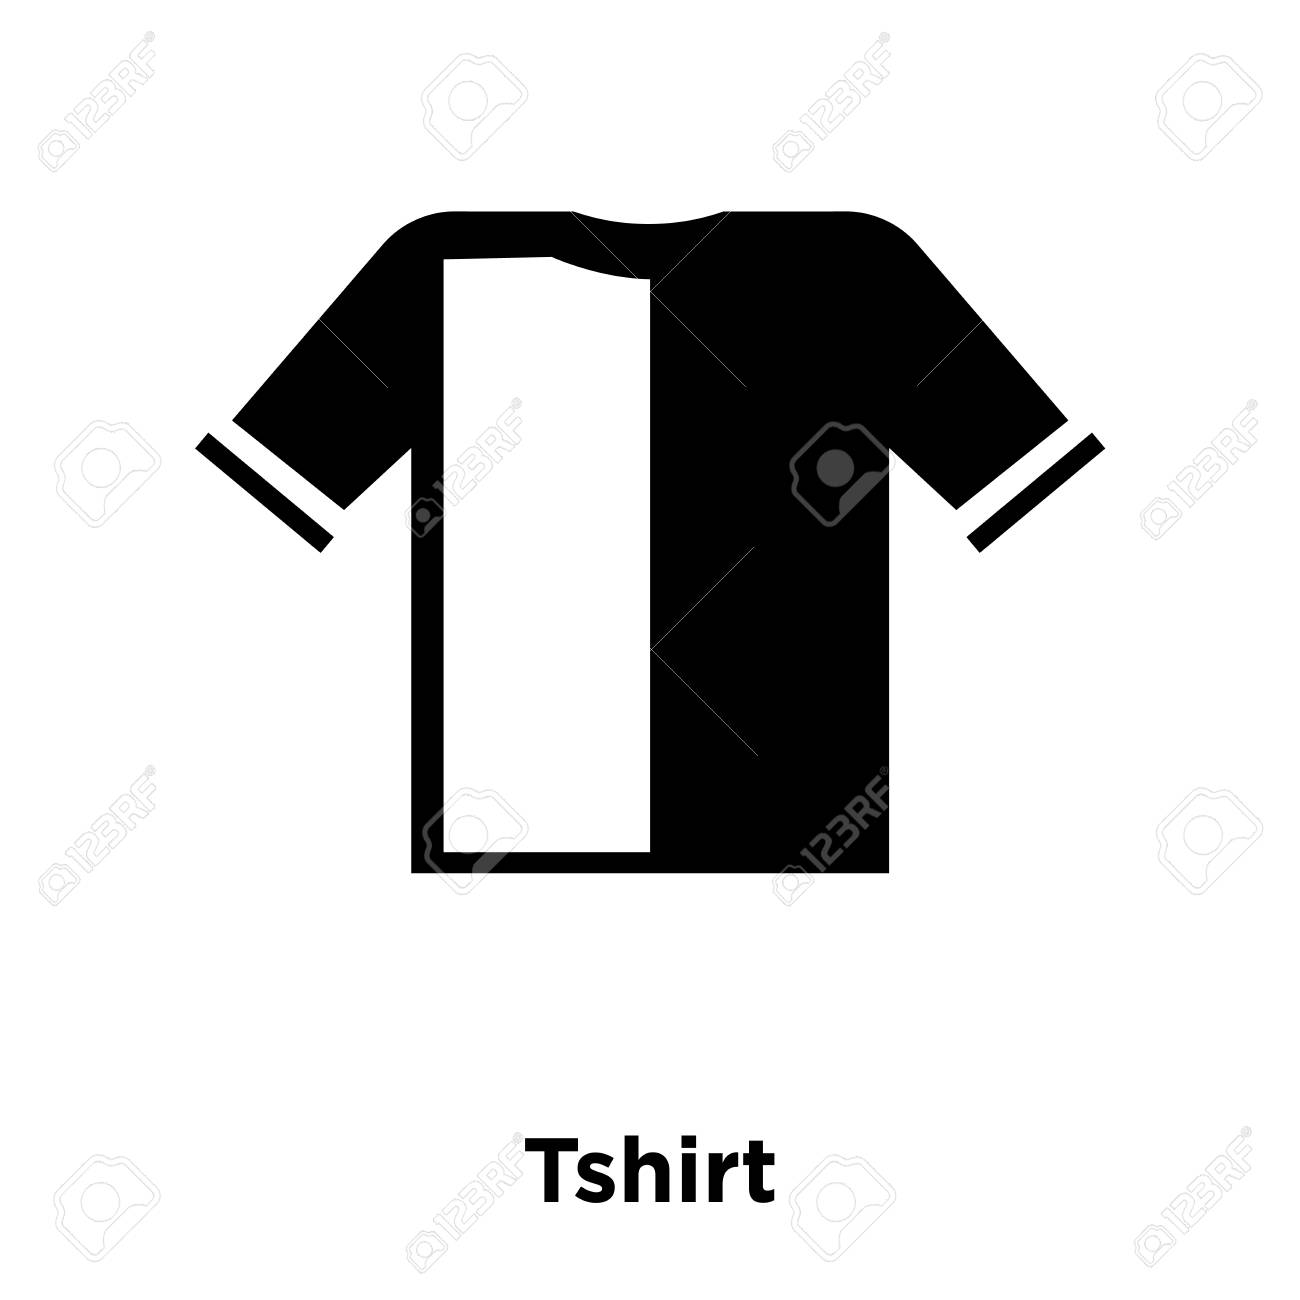 tshirt icon vector isolated on white background logo concept royalty free cliparts vectors and stock illustration image 107785999 123rf com